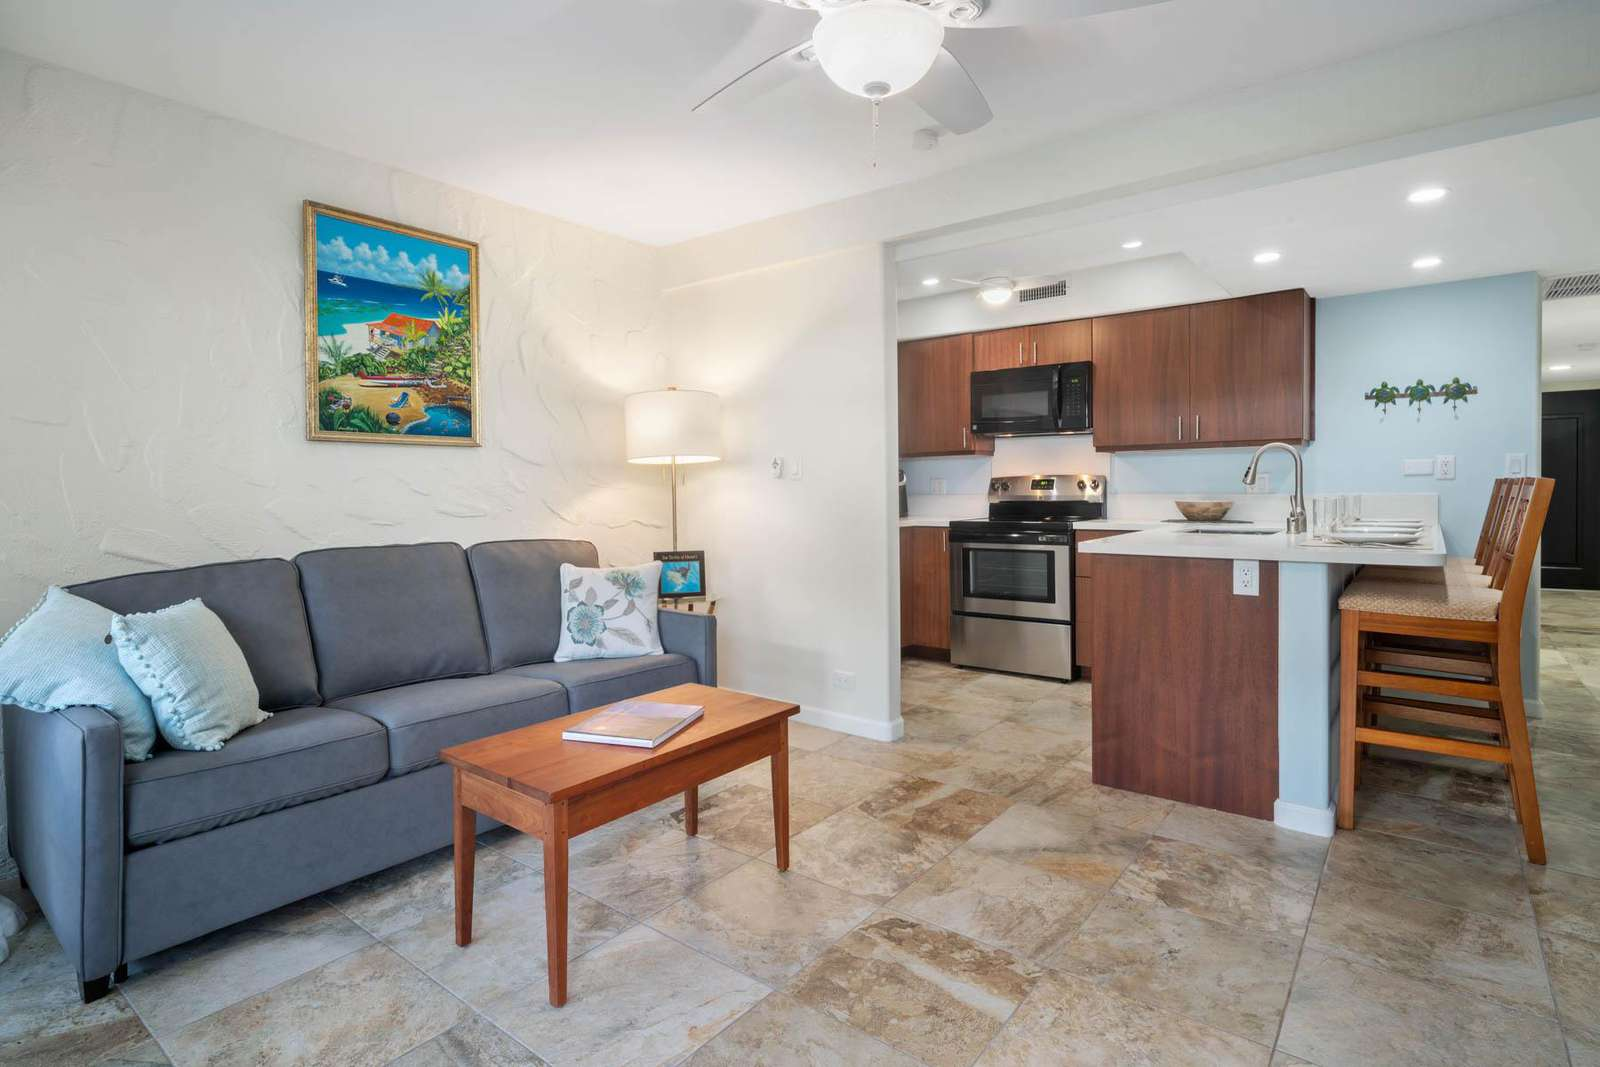 Lovely living area and kitchen - everything is brand new!